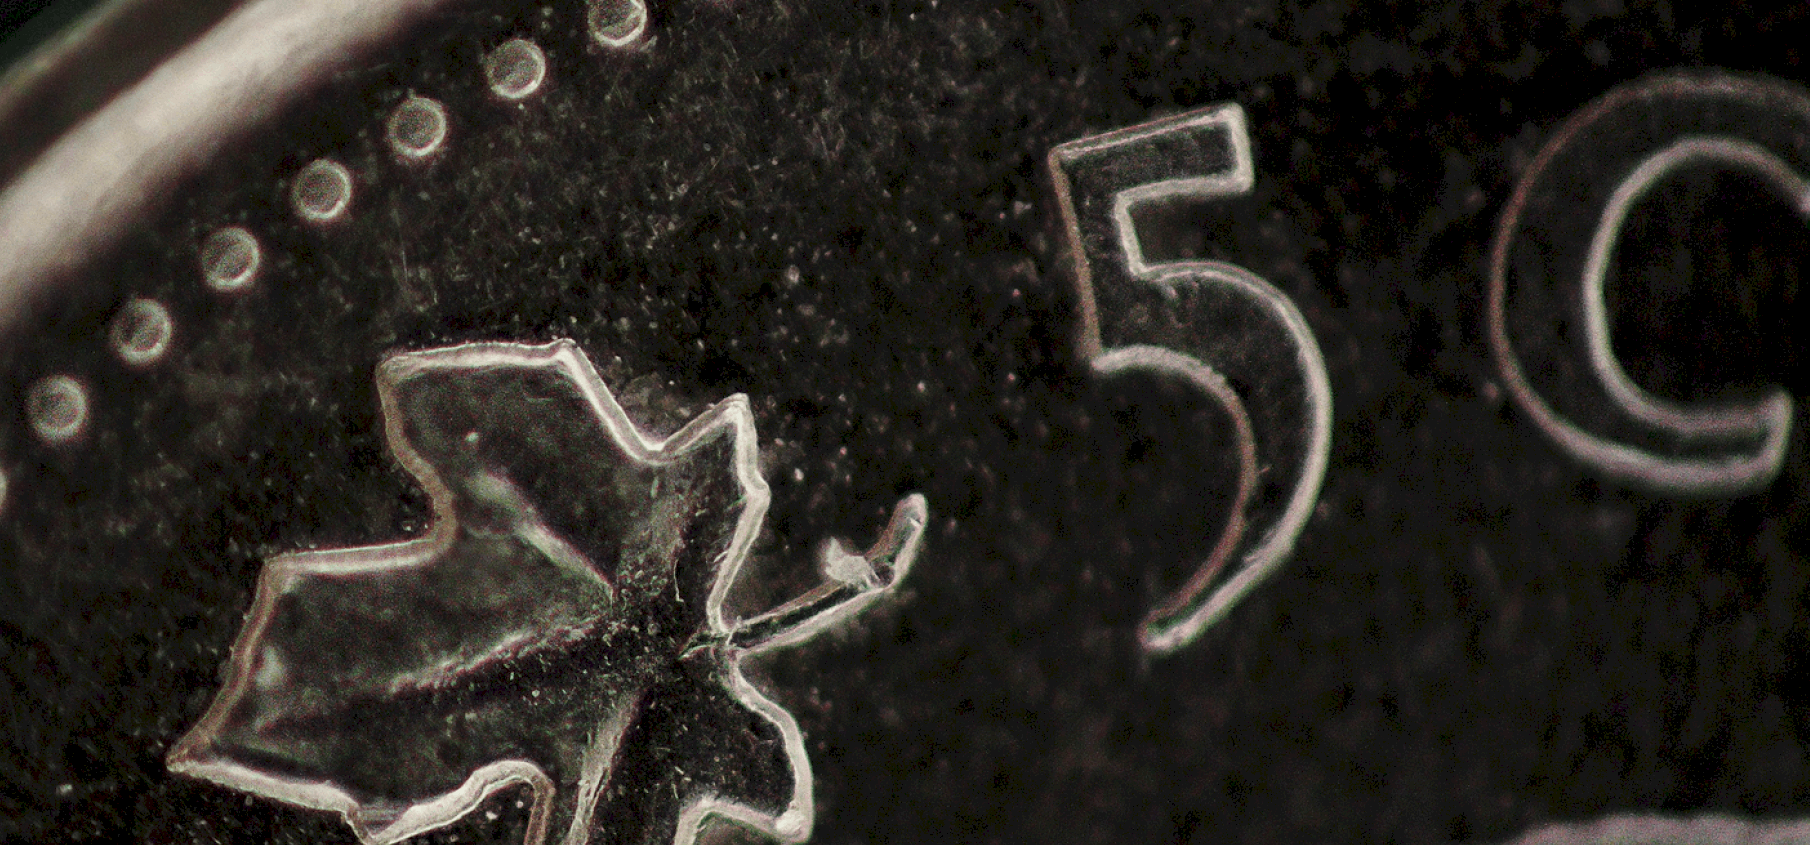 close-up picture of the Canadian 5 cent coin